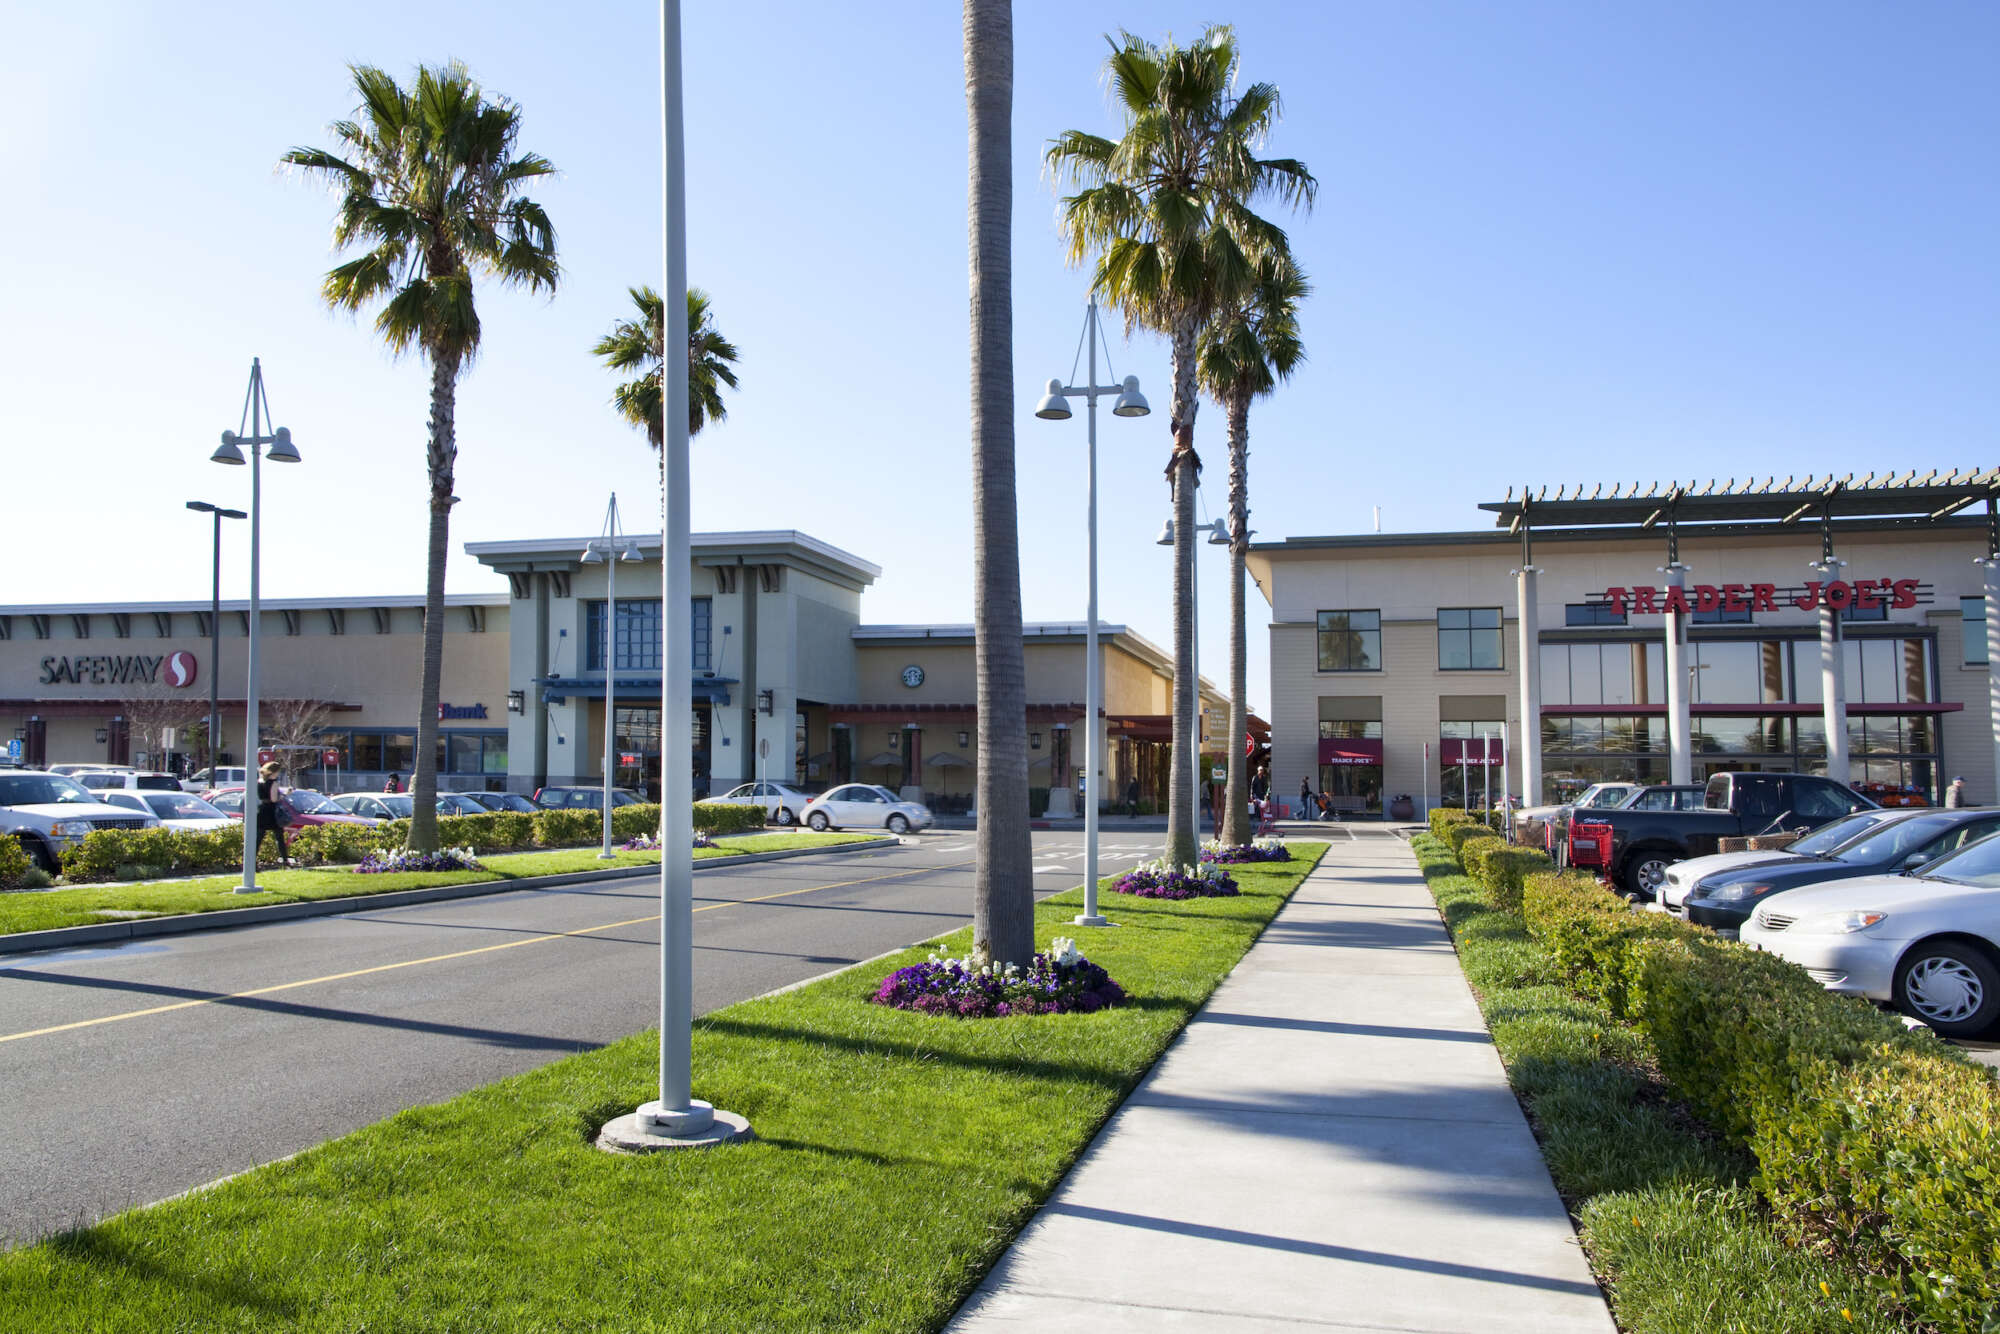 Alameda South Shore Center main entrance, street lined with palm trees, cars parked in lot